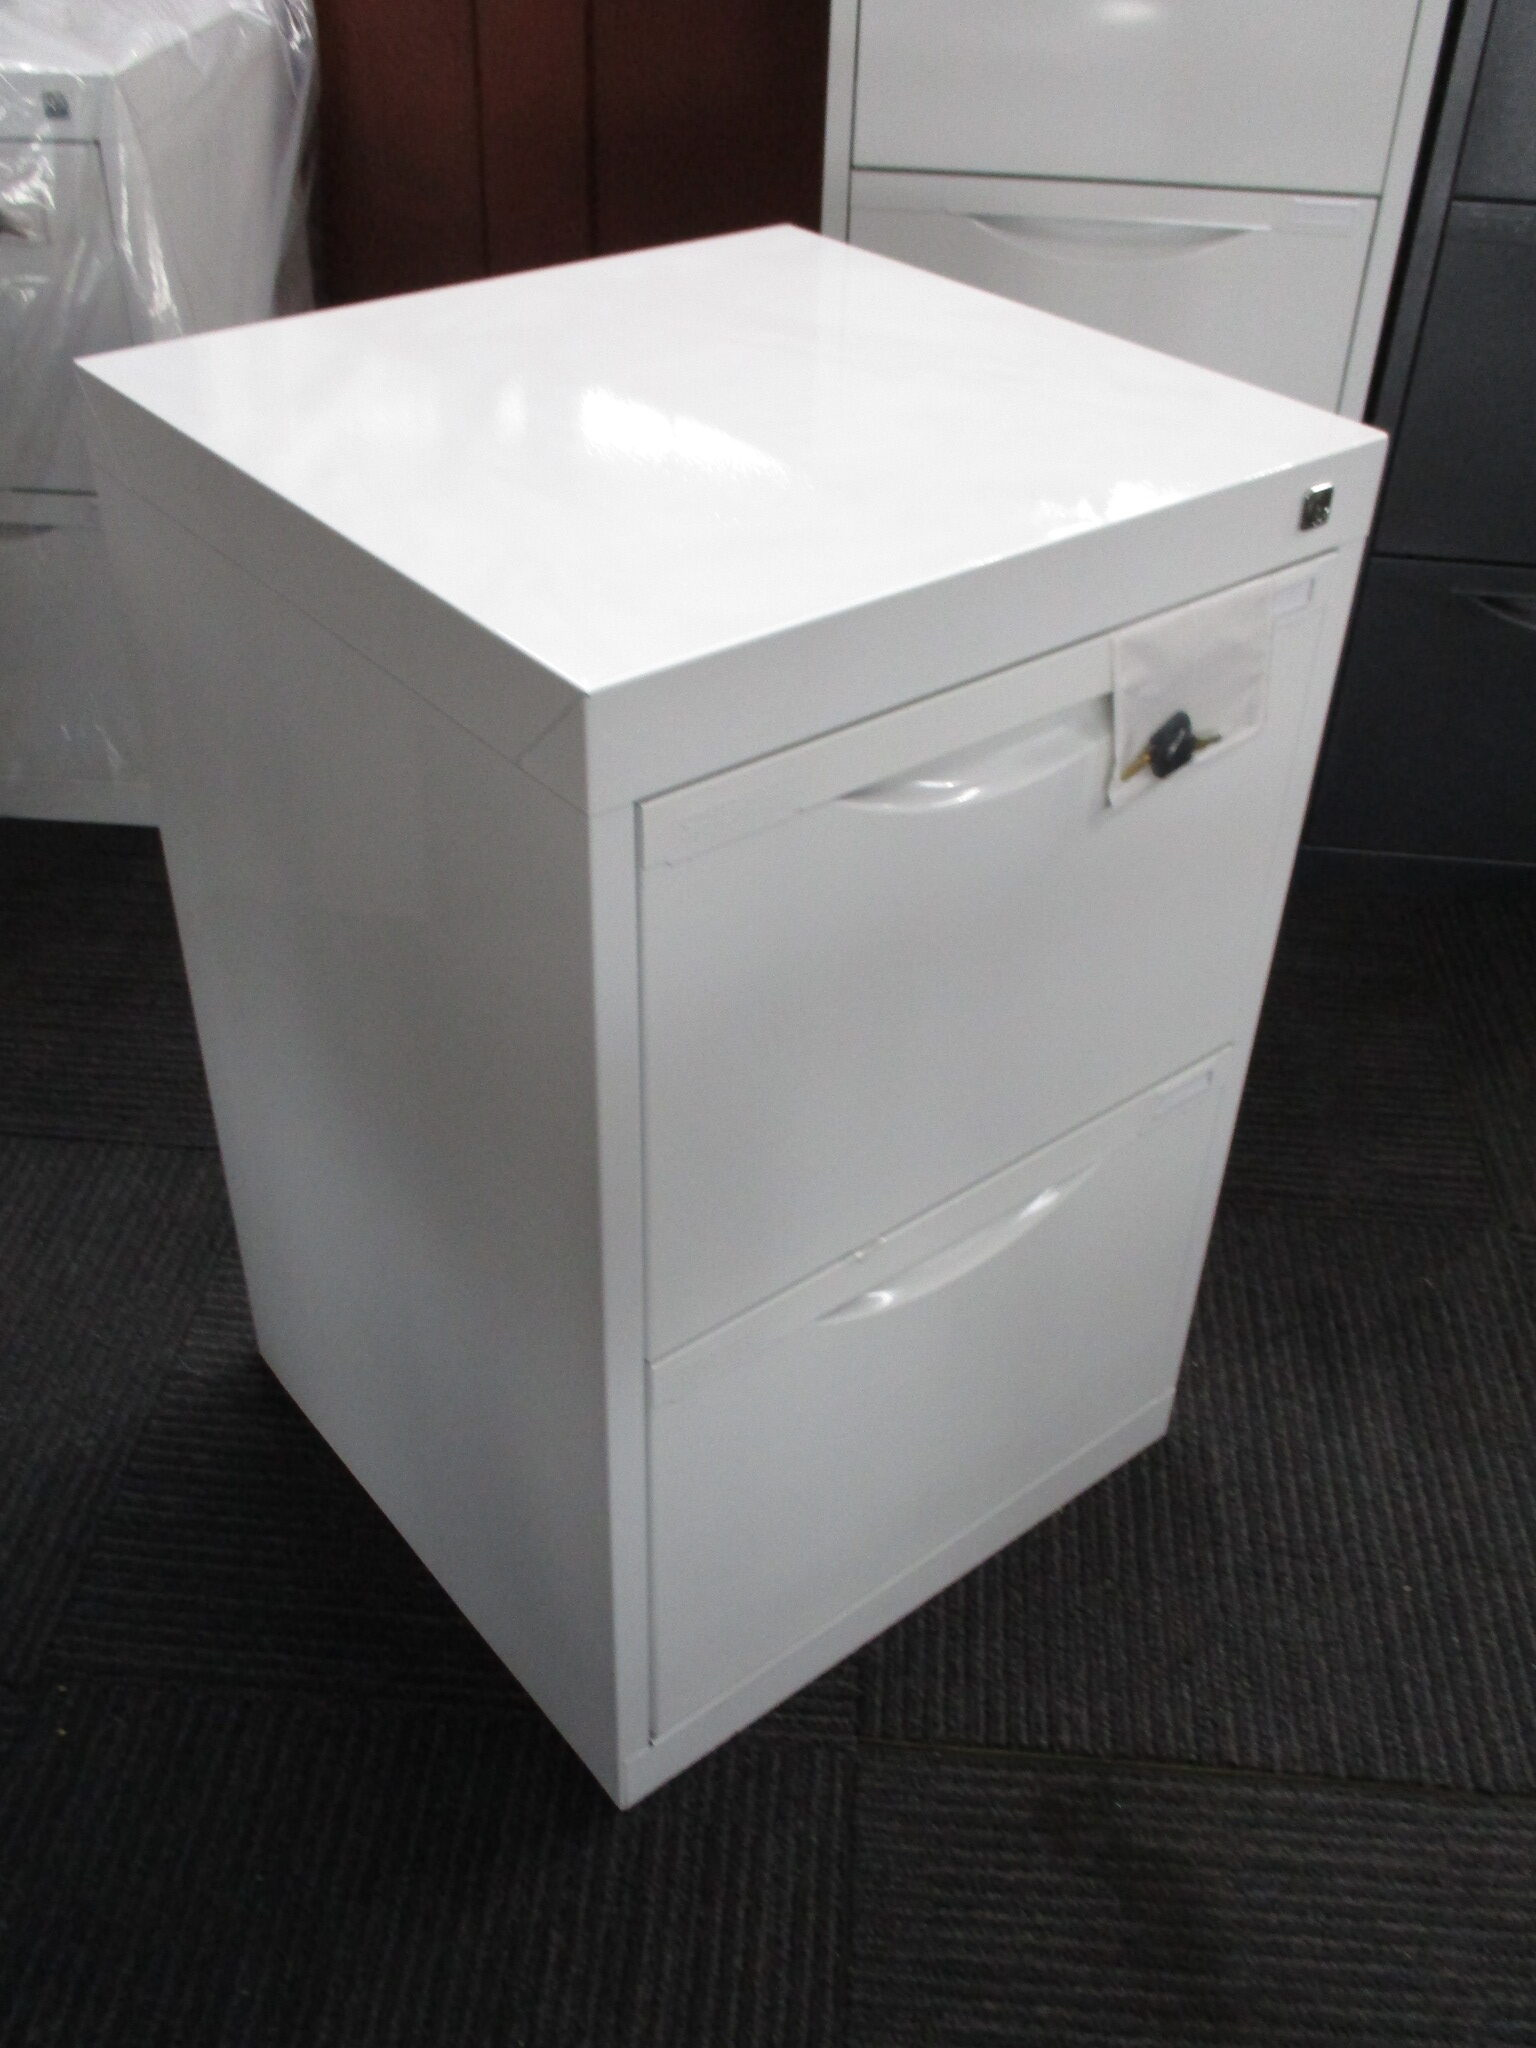 New White Statewide Homefile 2 Drawer Filing Cabinet $225